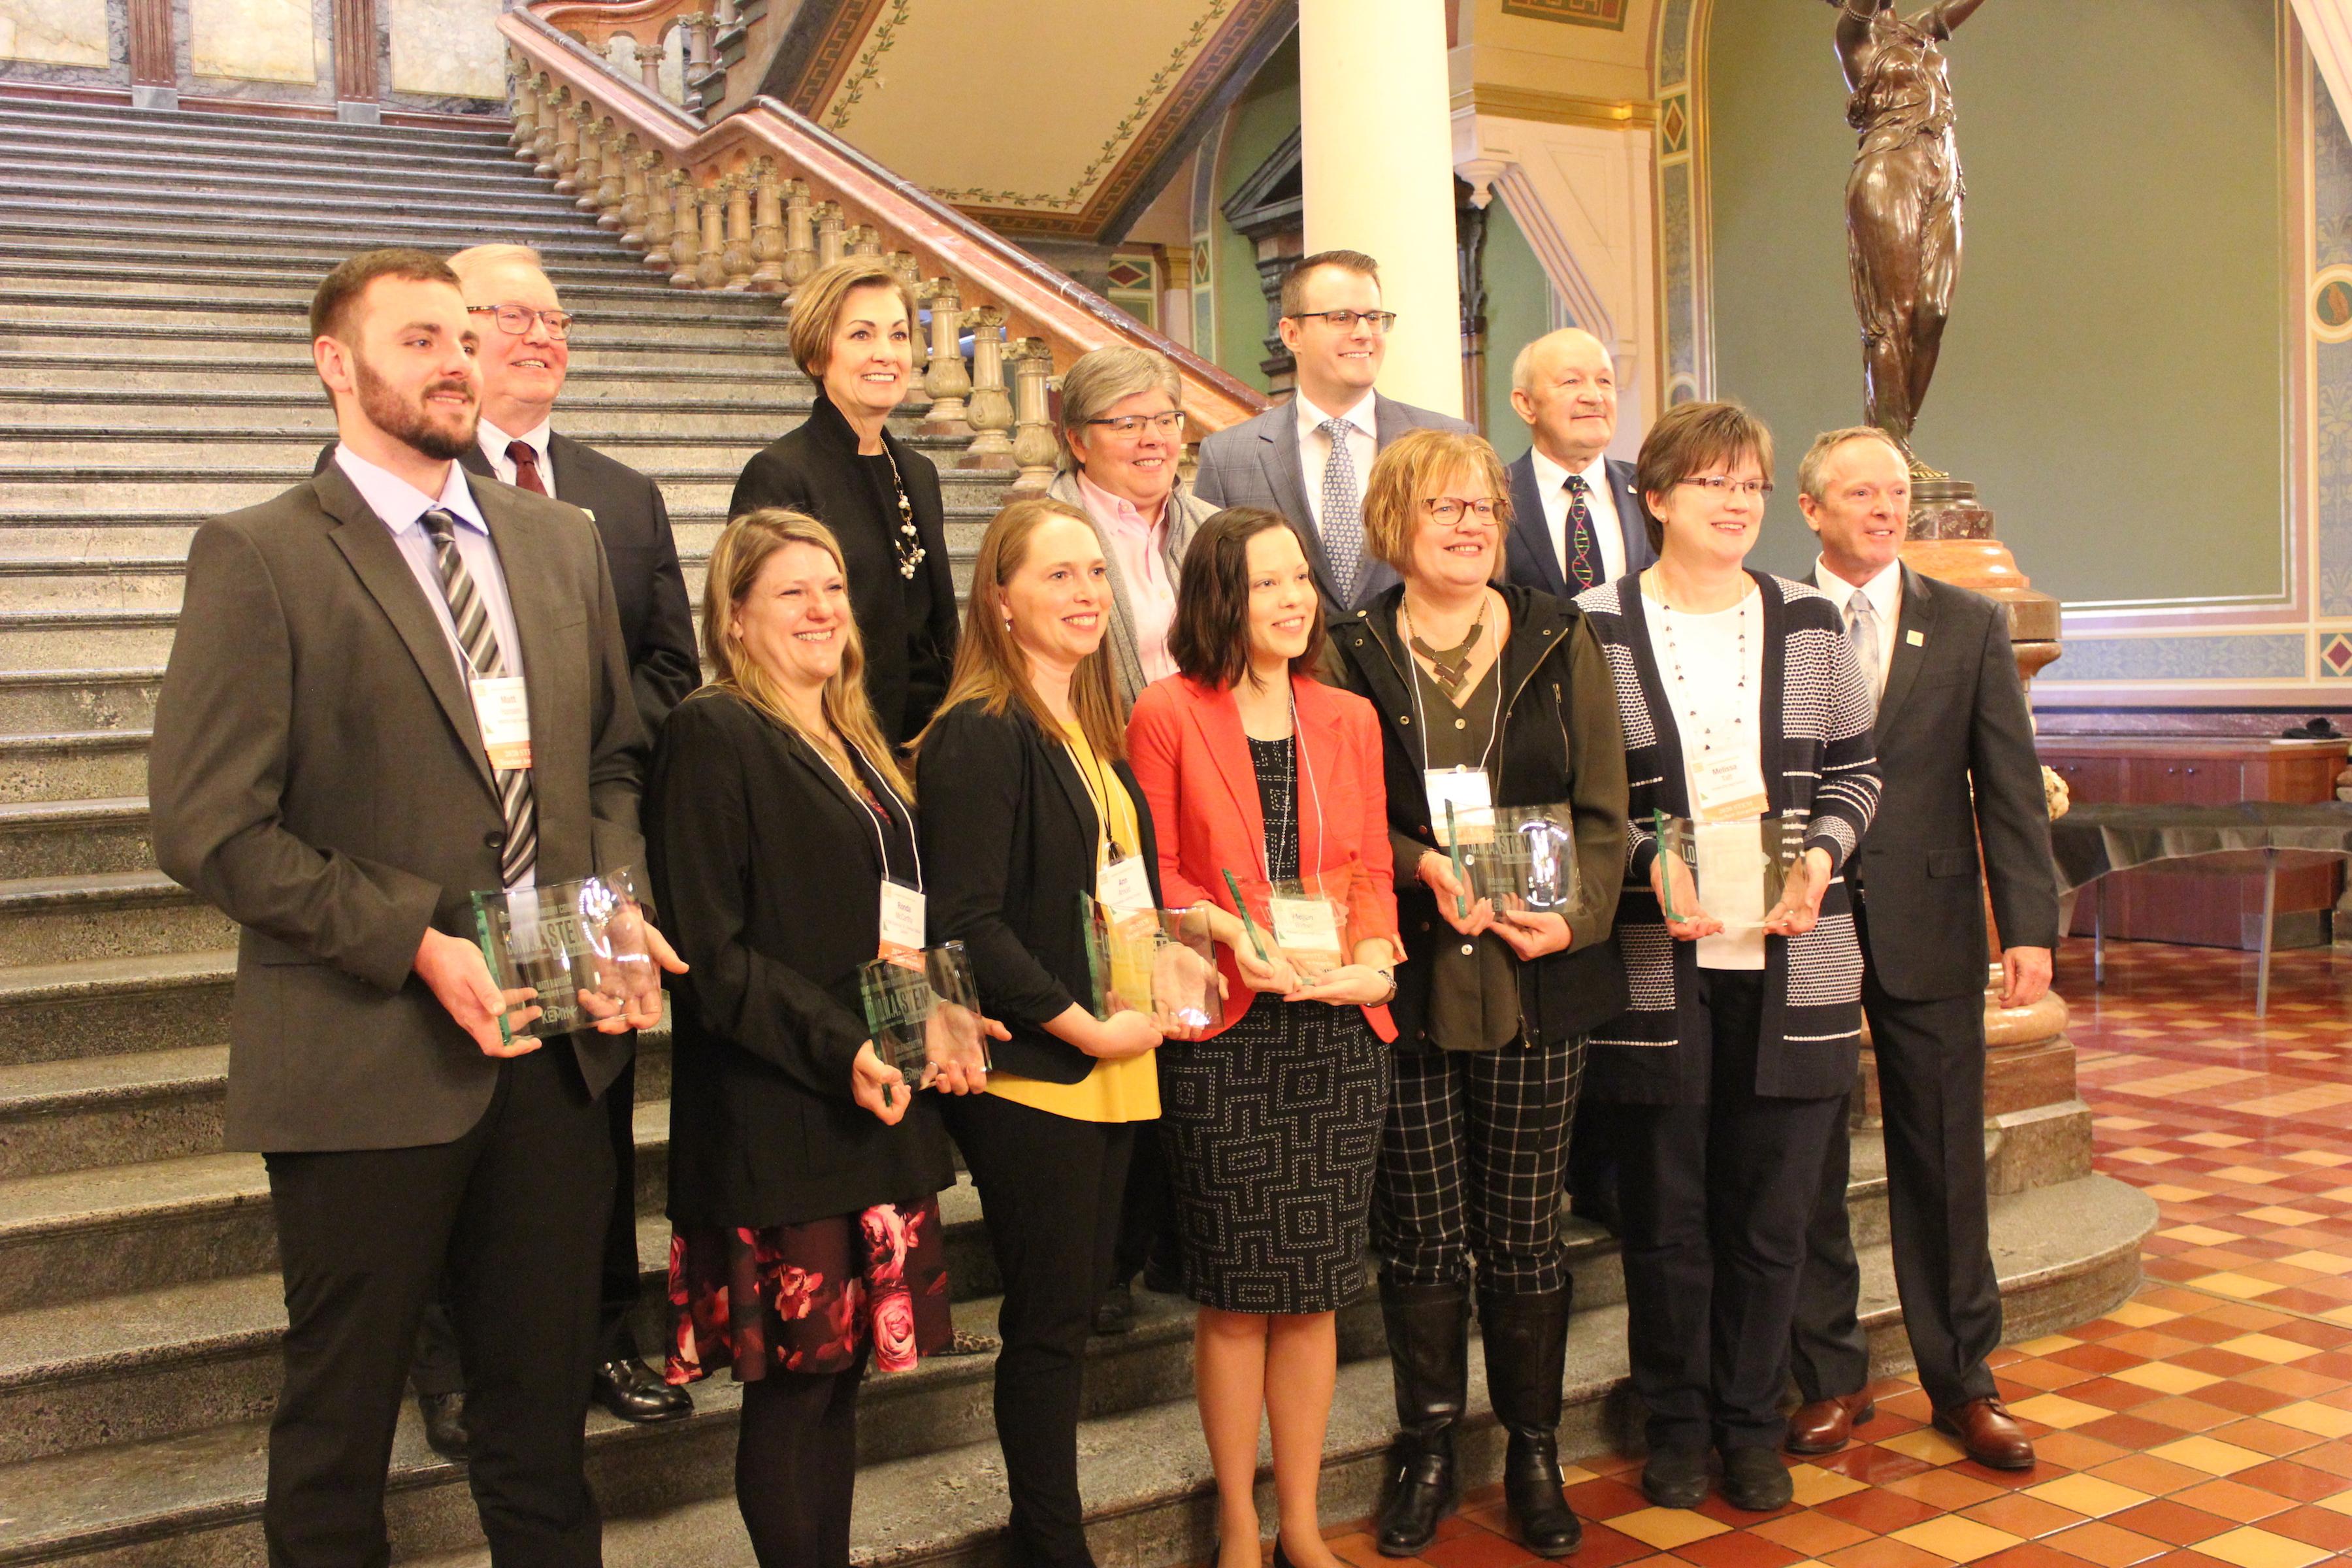 2020 I.O.W.A. STEM Teacher Award recipients were honored at STEM Day at the Capitol.